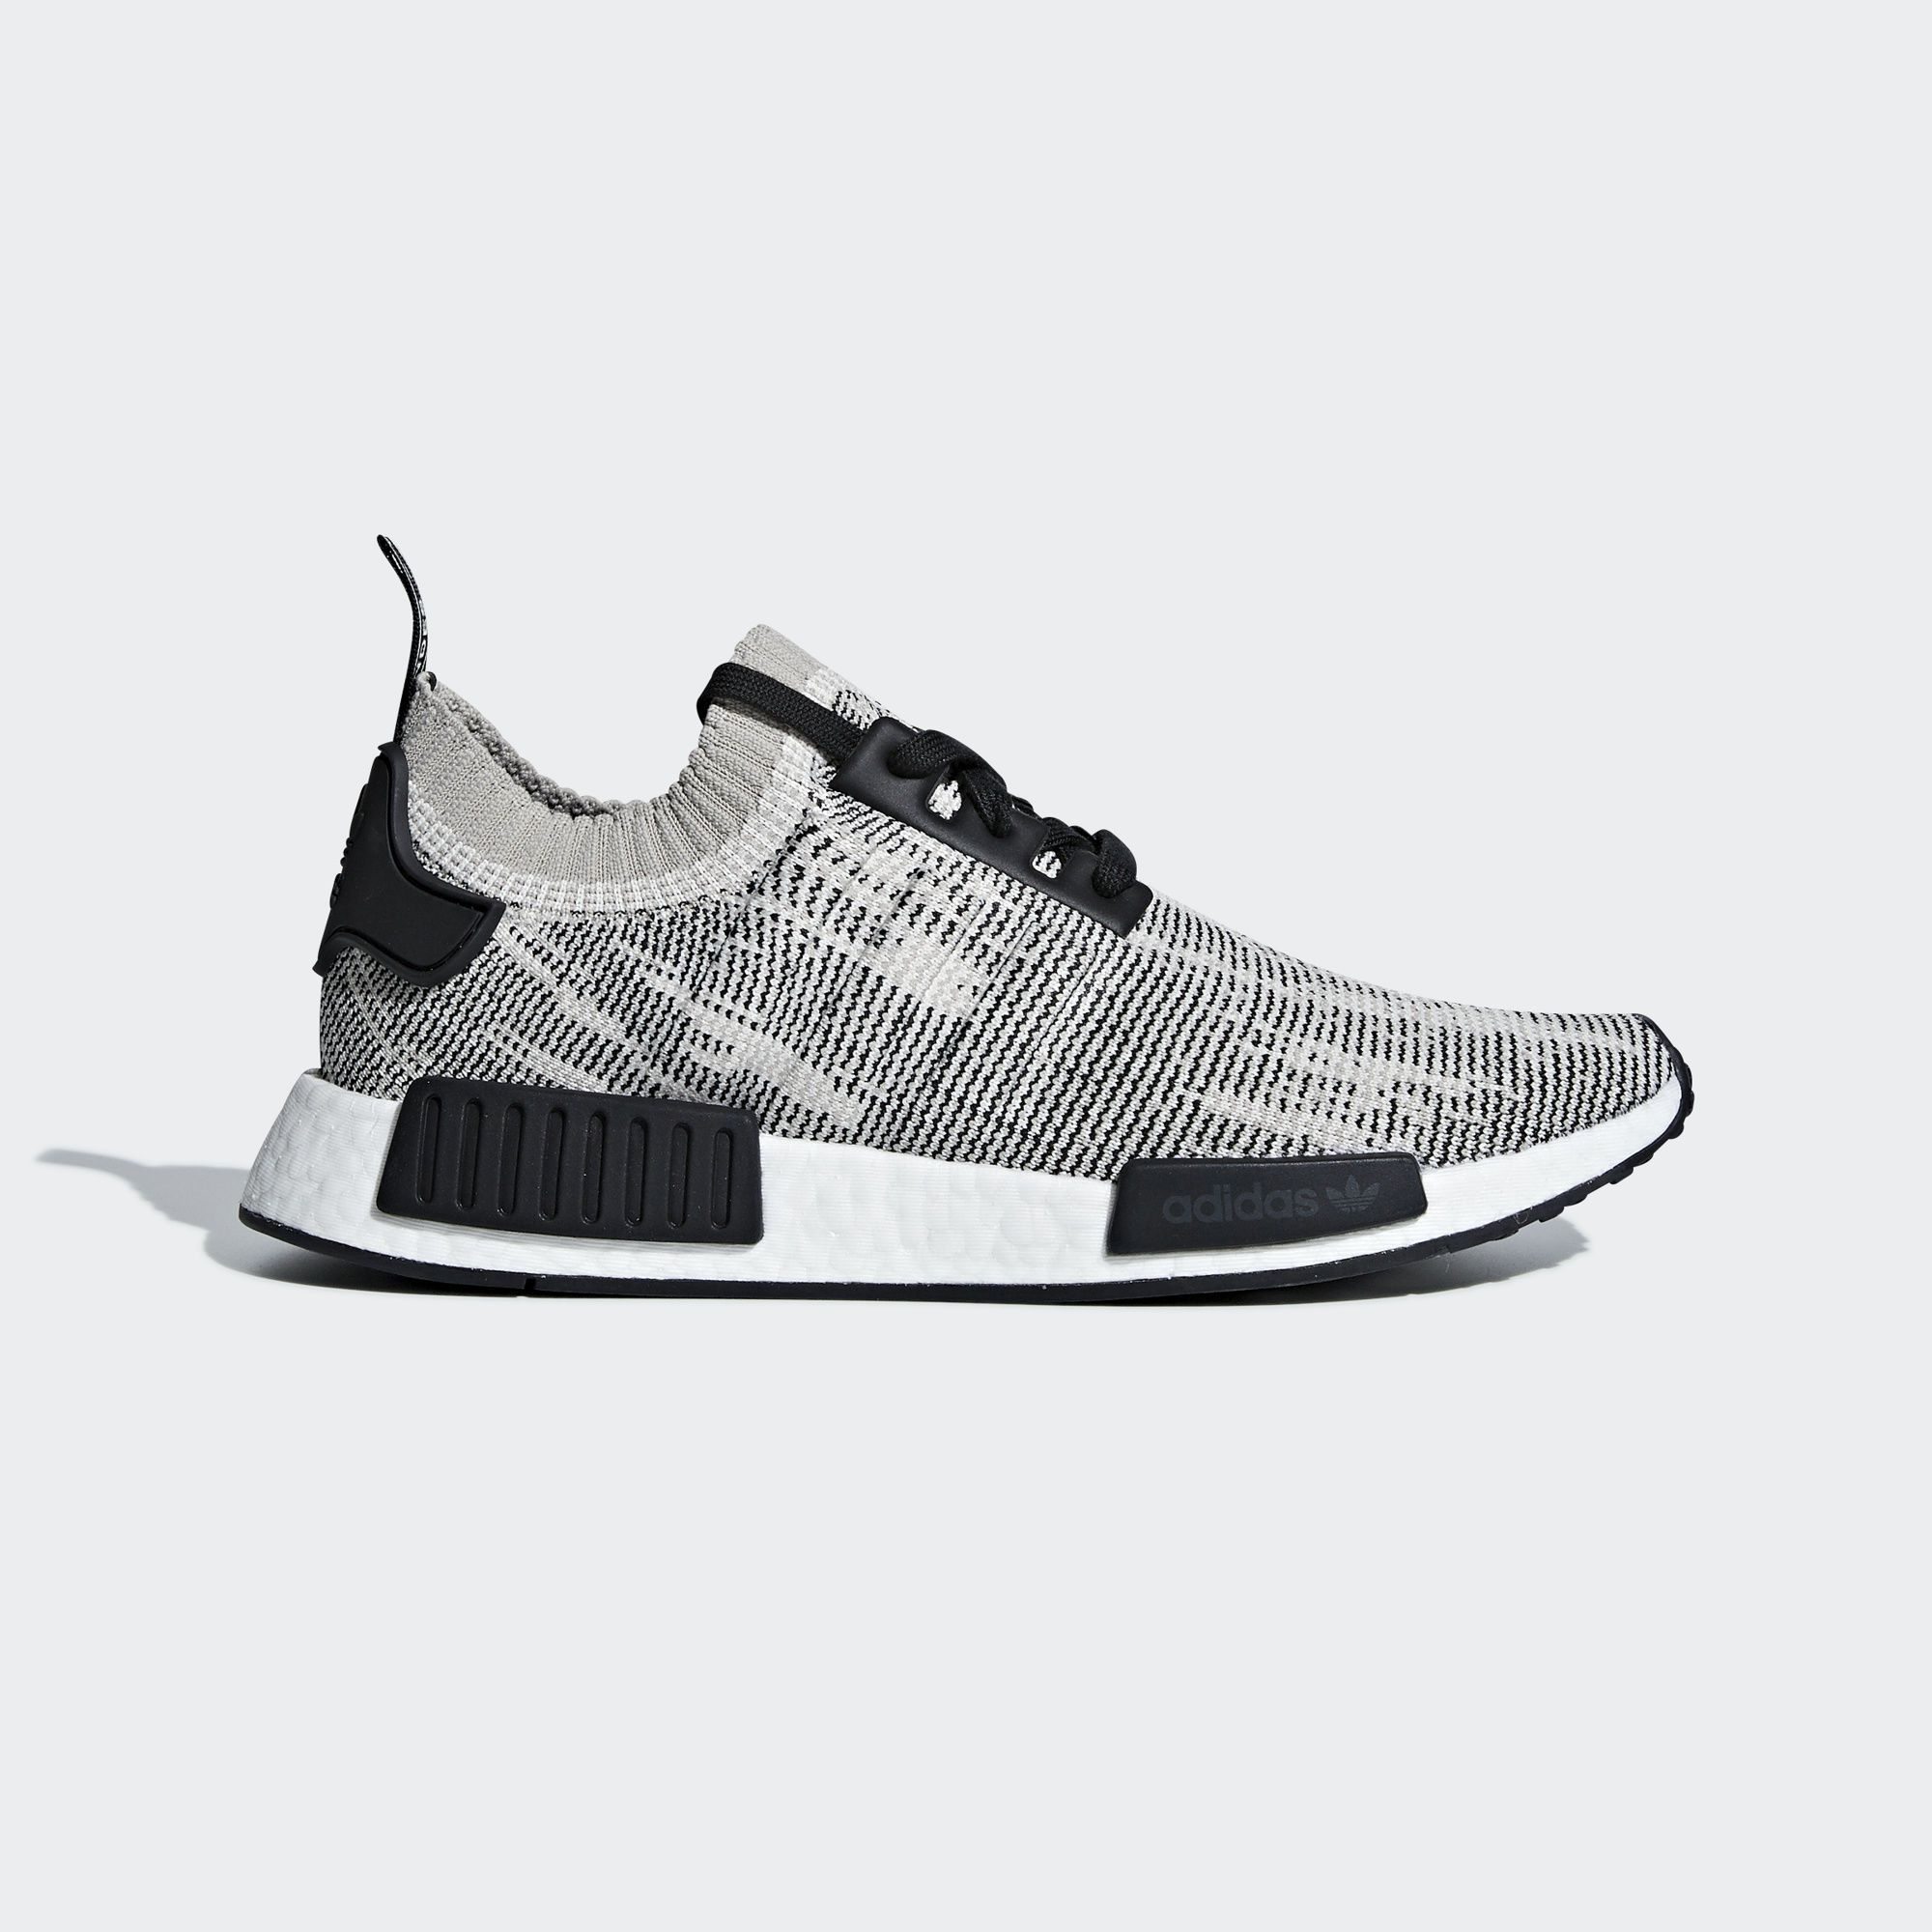 Shop for Nmd_R1 Primeknit Shoes Grey at adidas.ca! See all